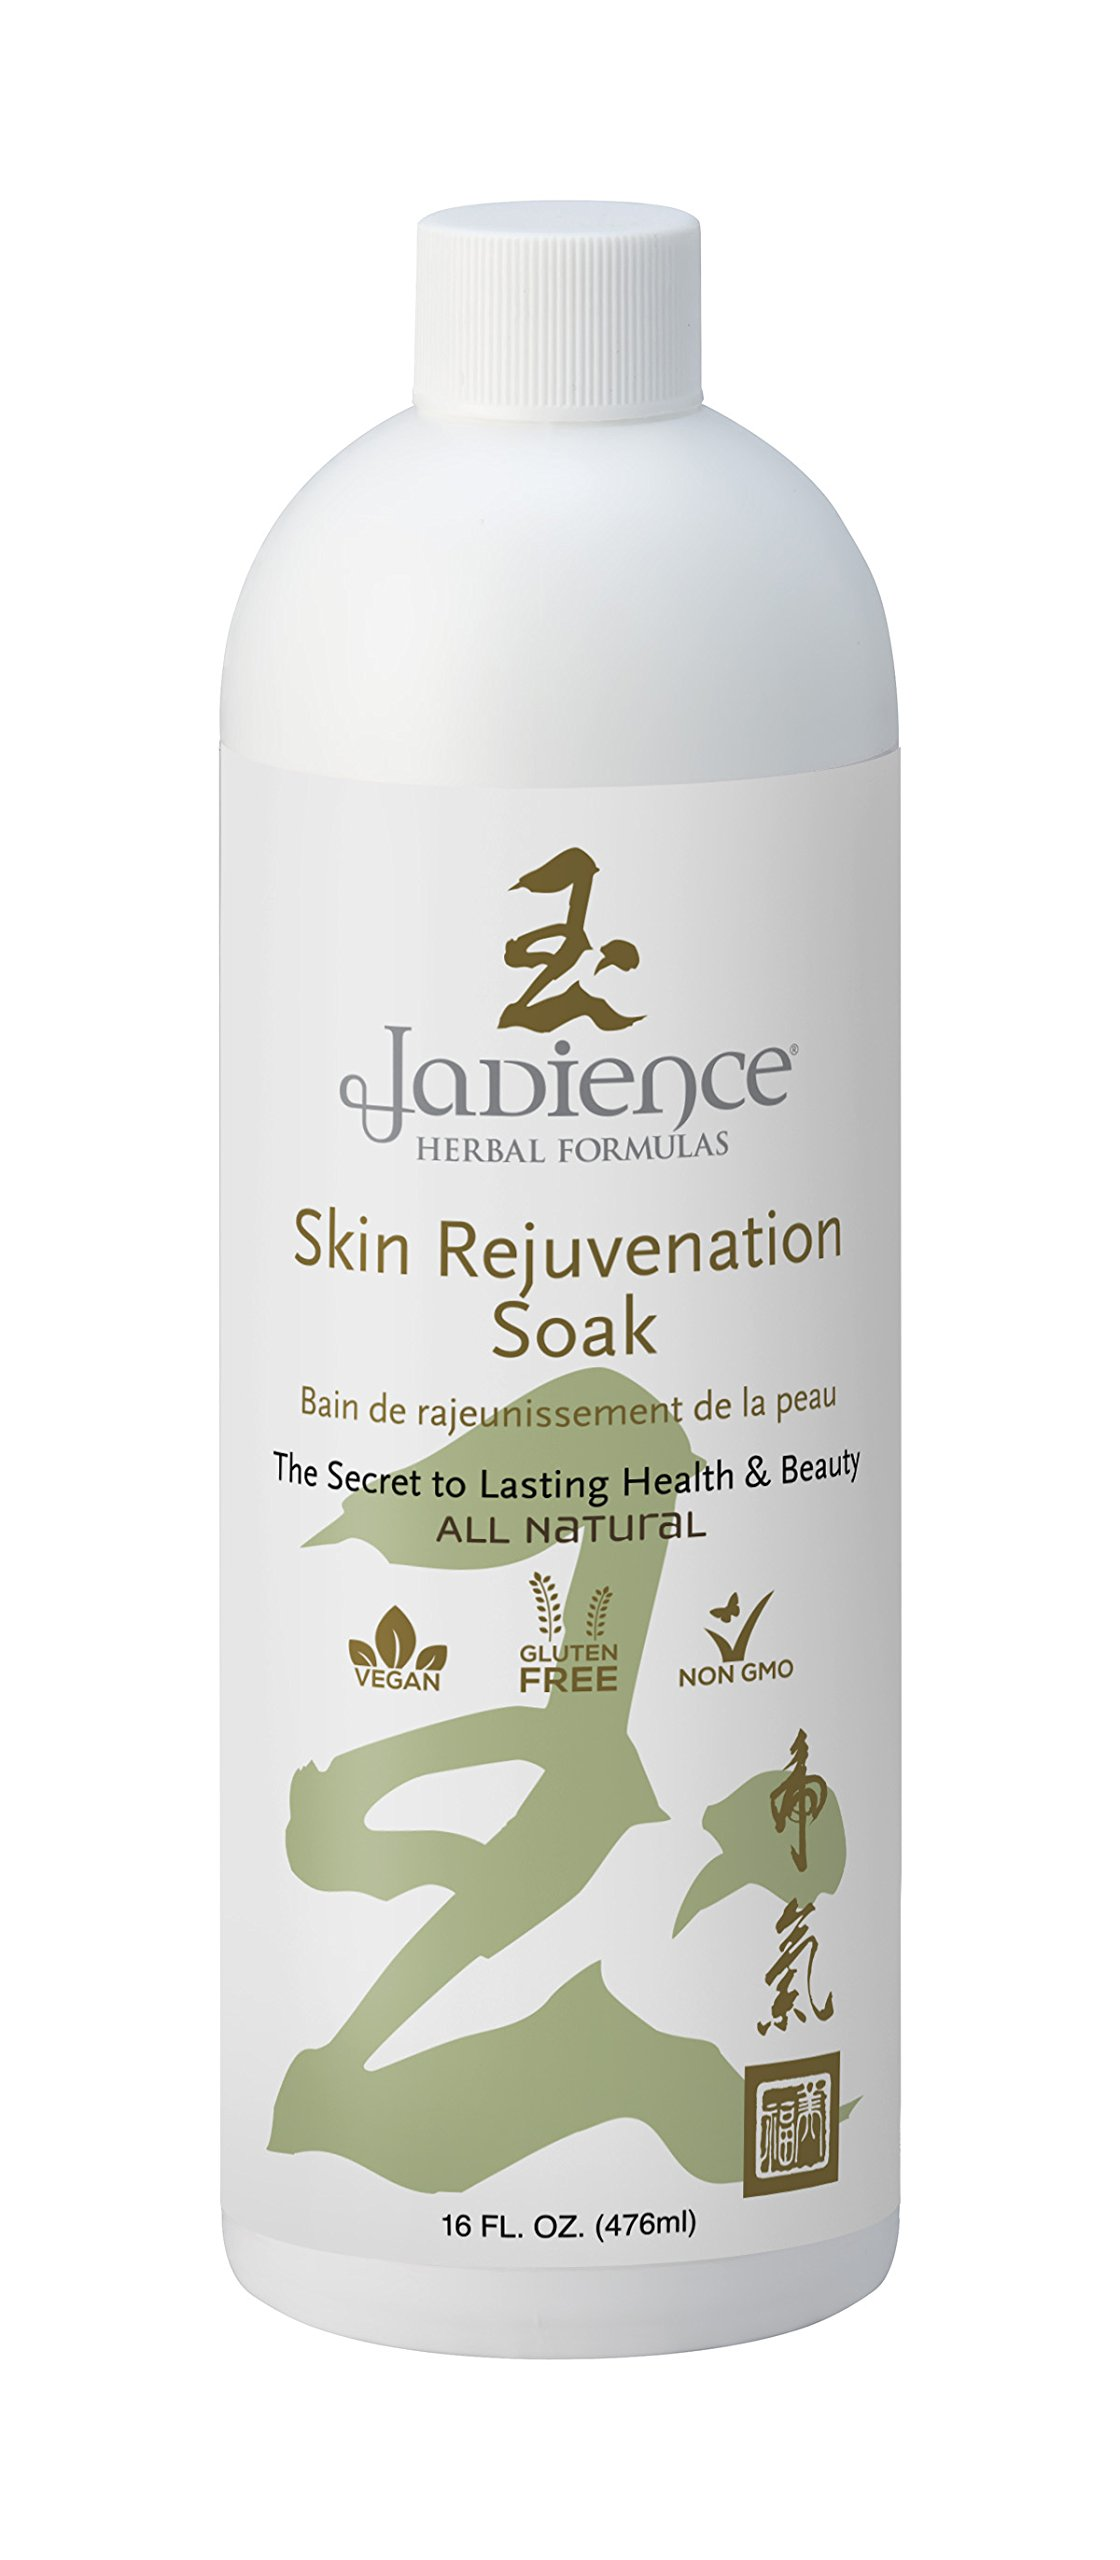 Skin Rejuvenation Bath Soak for Women & Men by Jadience: 16oz | Natural Liquid Formula for Full Body Bubble Bath or Foot Soaking | Relieve Dry Irritated Skin, Stress, Fatigue & Muscle Joint Pain